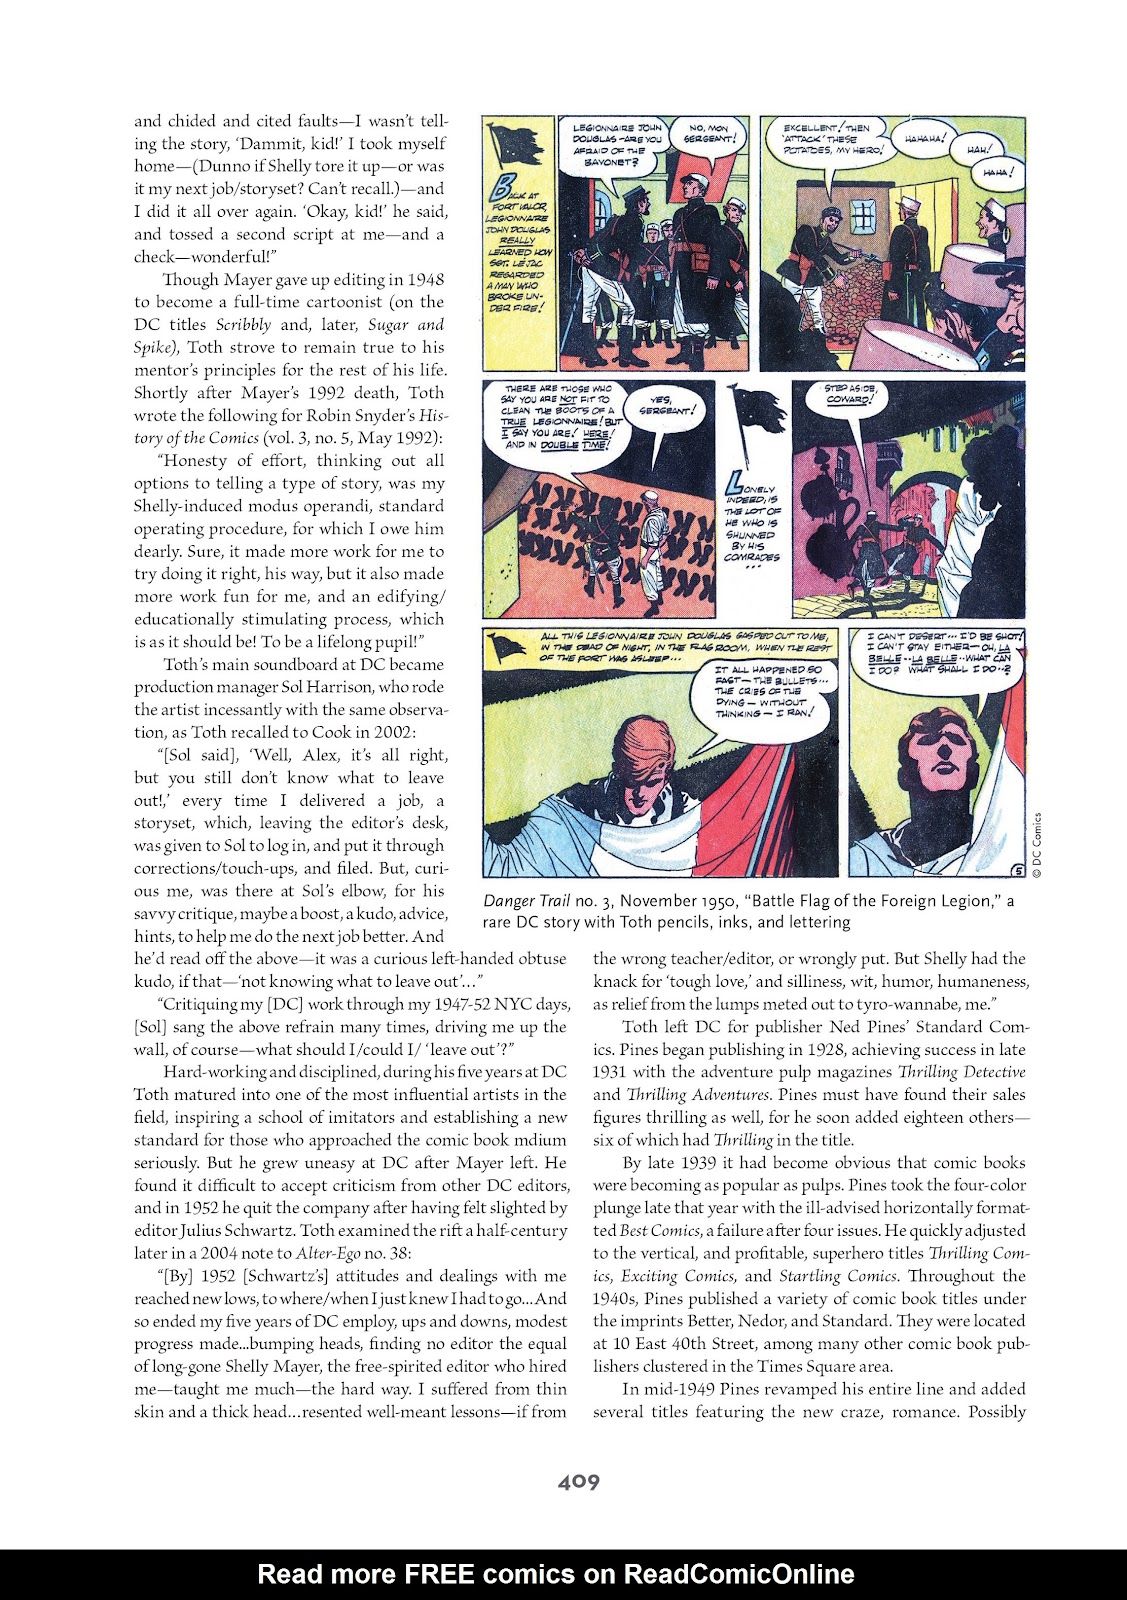 Read online Setting the Standard: Comics by Alex Toth 1952-1954 comic -  Issue # TPB (Part 4) - 110